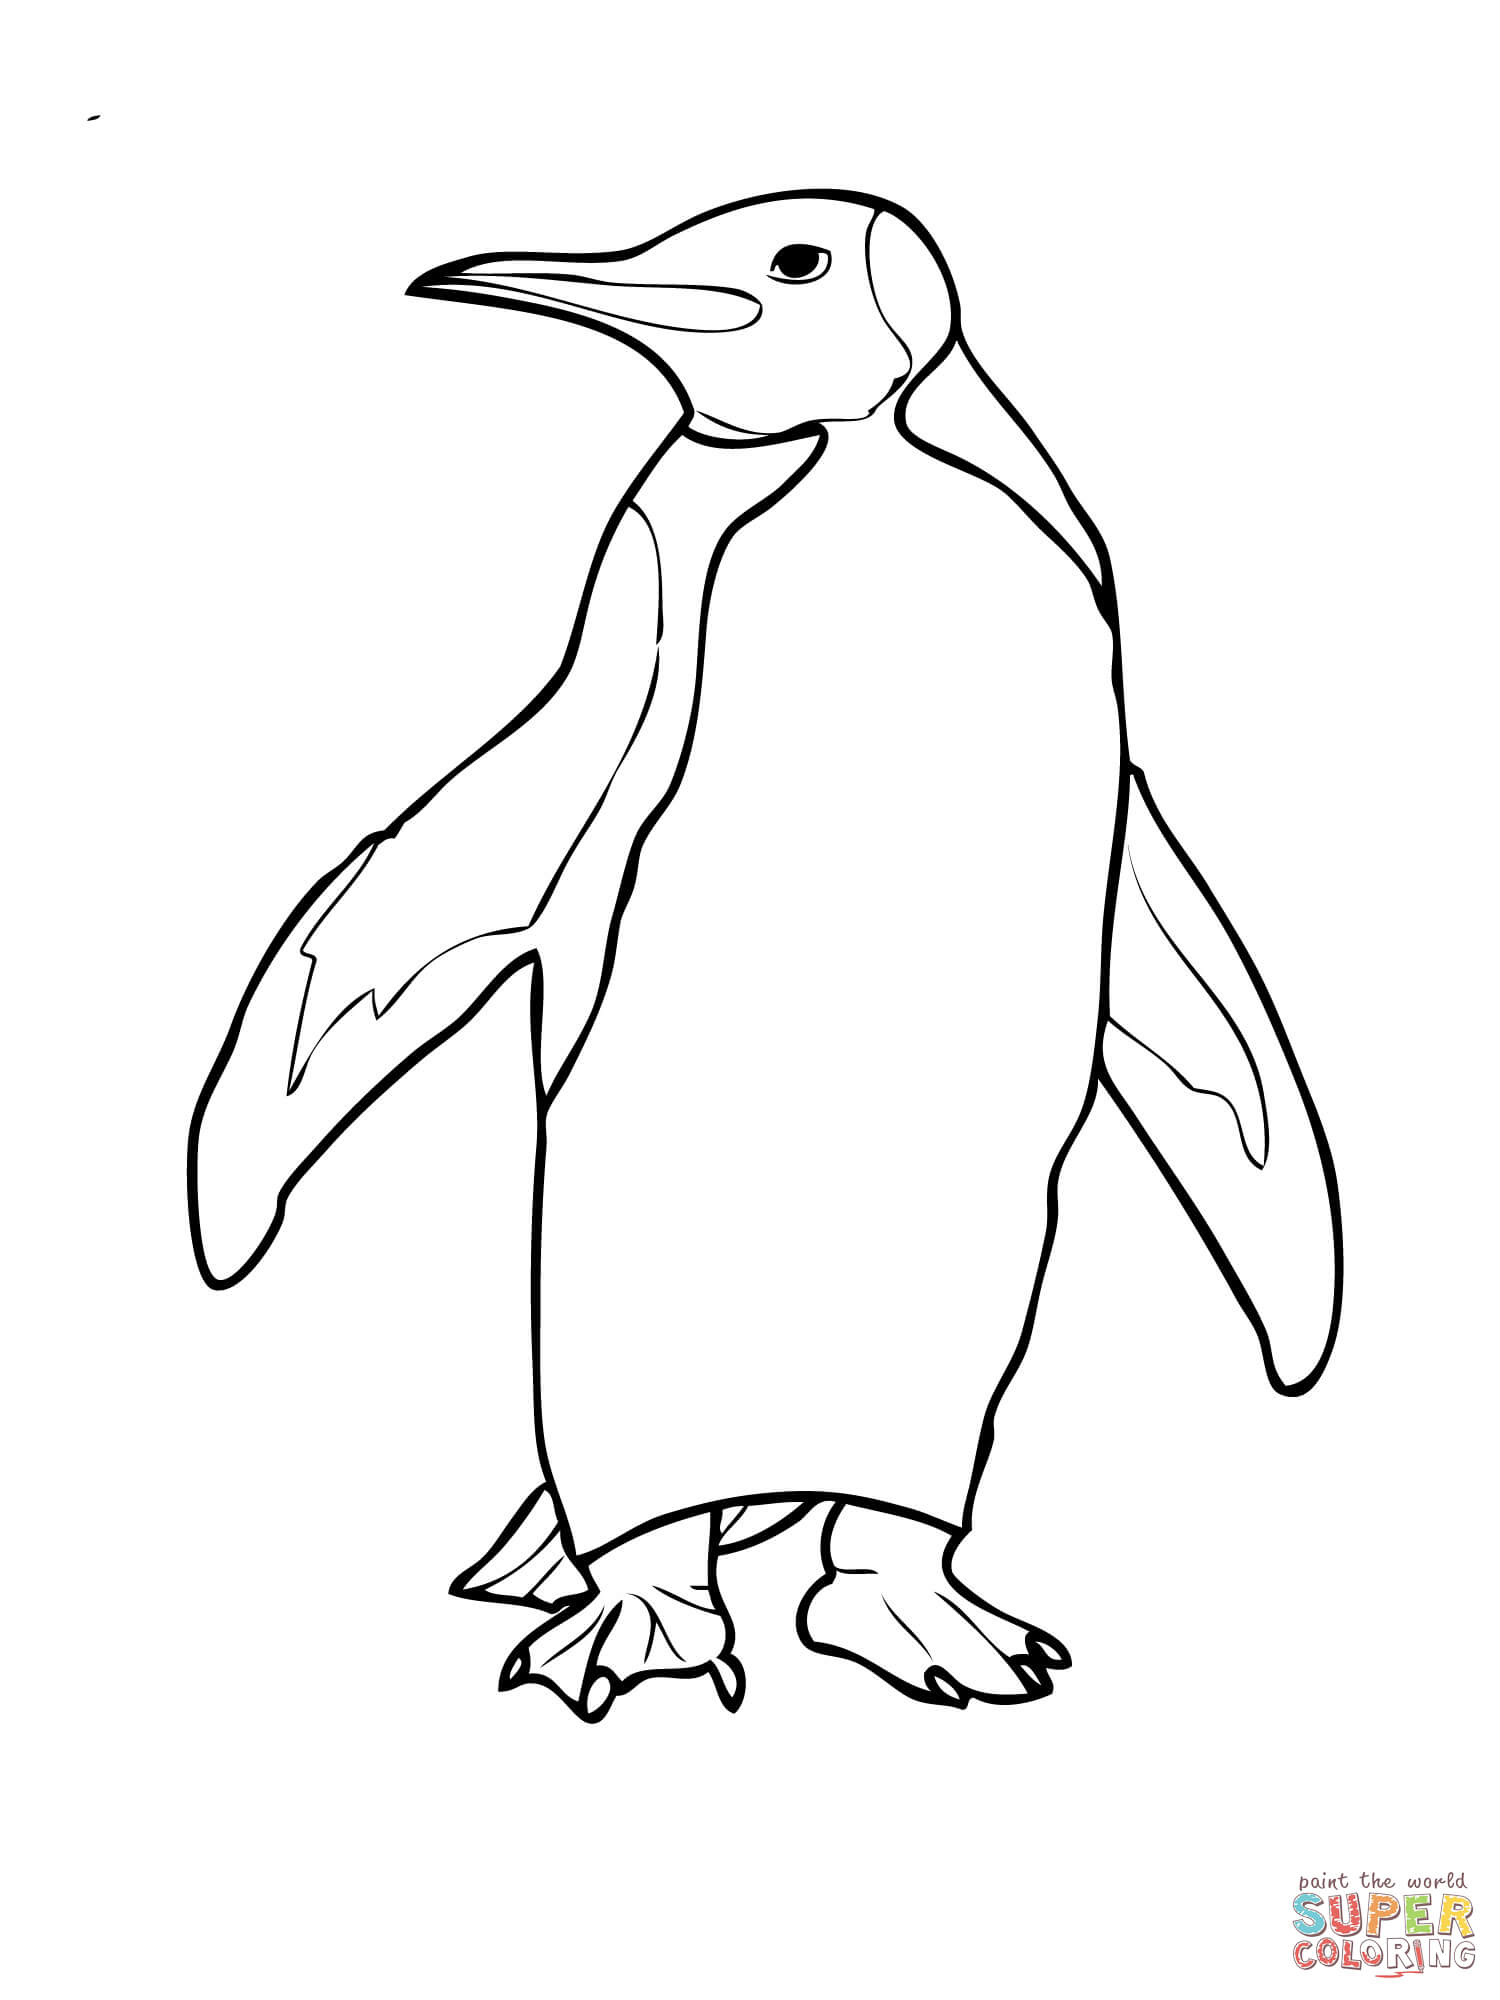 1500x2000 King Penguin With A Bow Tie Coloring Page Free Printable